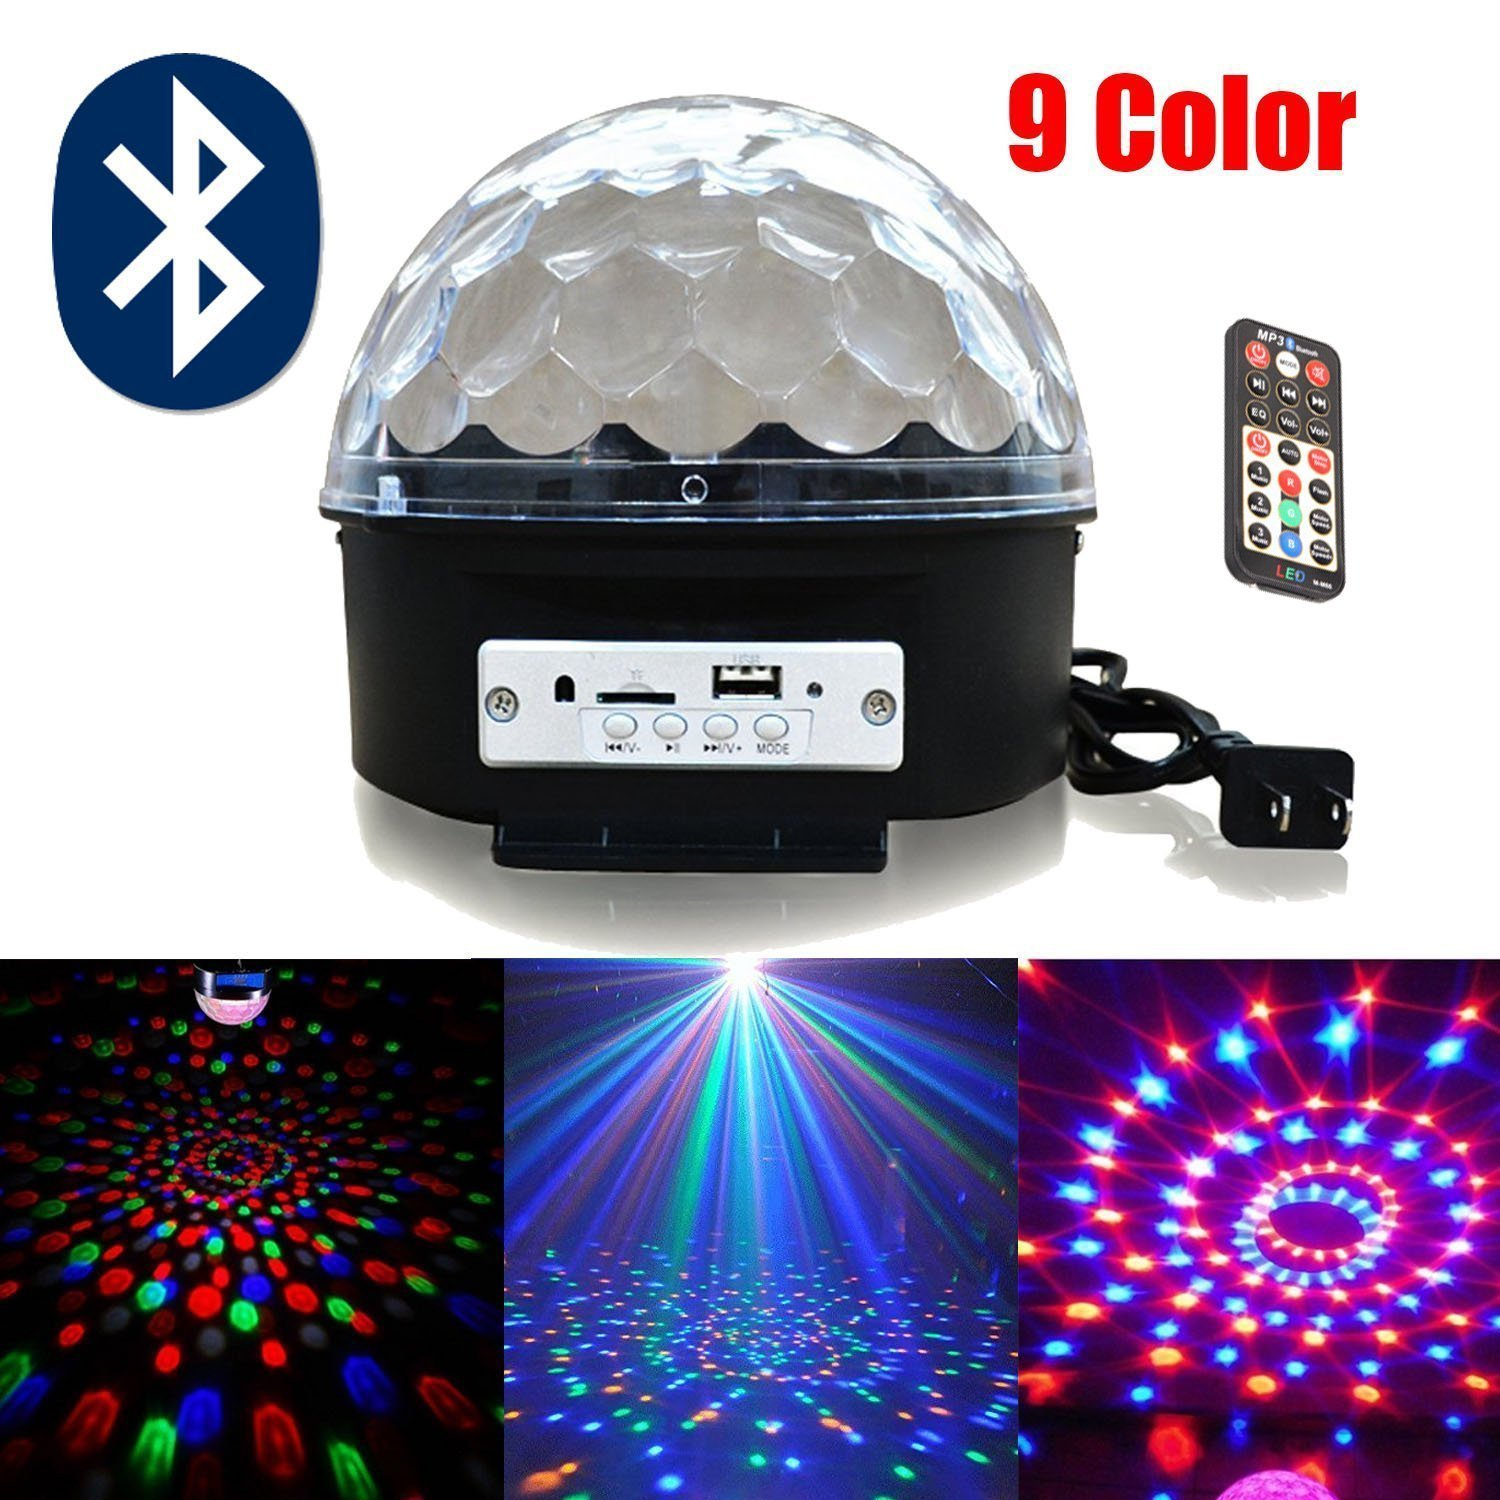 LumiParty Upgrade 9 Color Mp3 Bluetooth Music Led RGB with Music Crystal Magic Effect Ball Light DMX Disco Dj Stage Light<br>